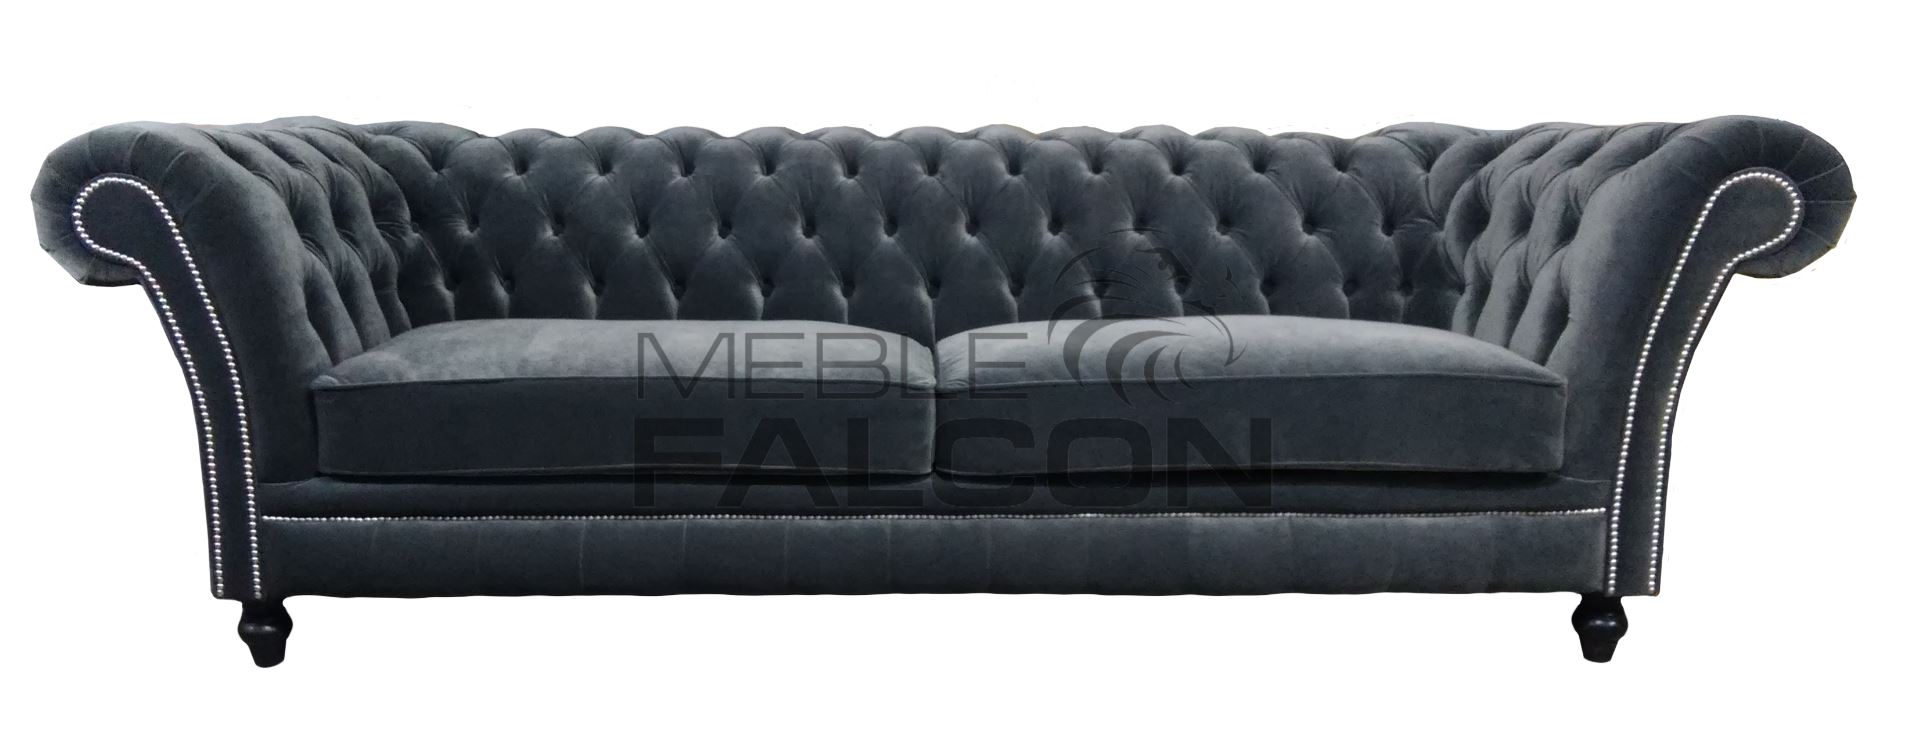 sofa chesterfield z pikowanym oparciem producent